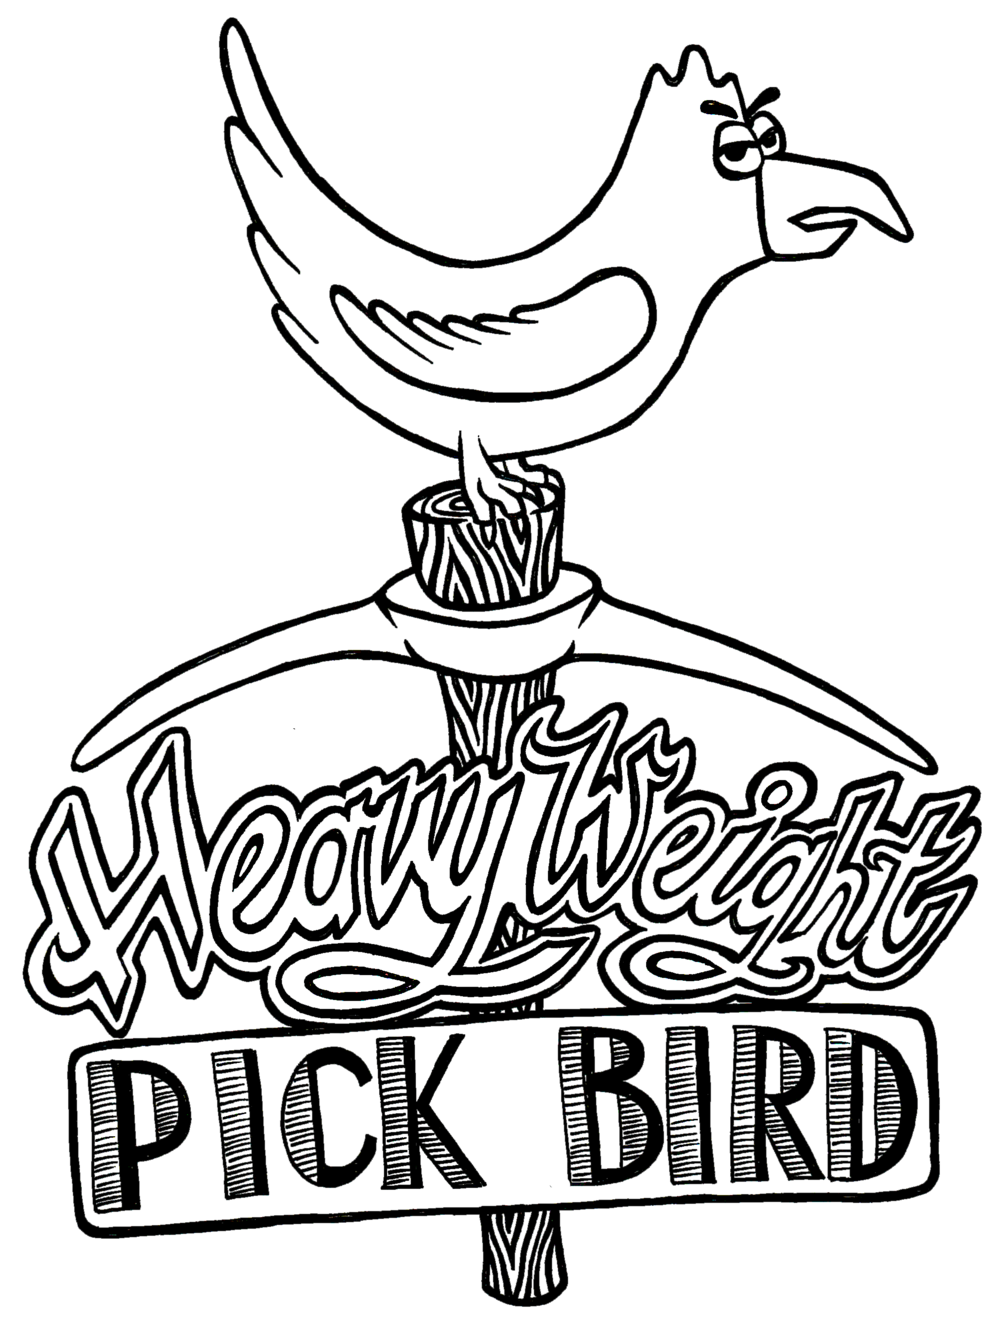 Heavyweight Pick Bird (2013)